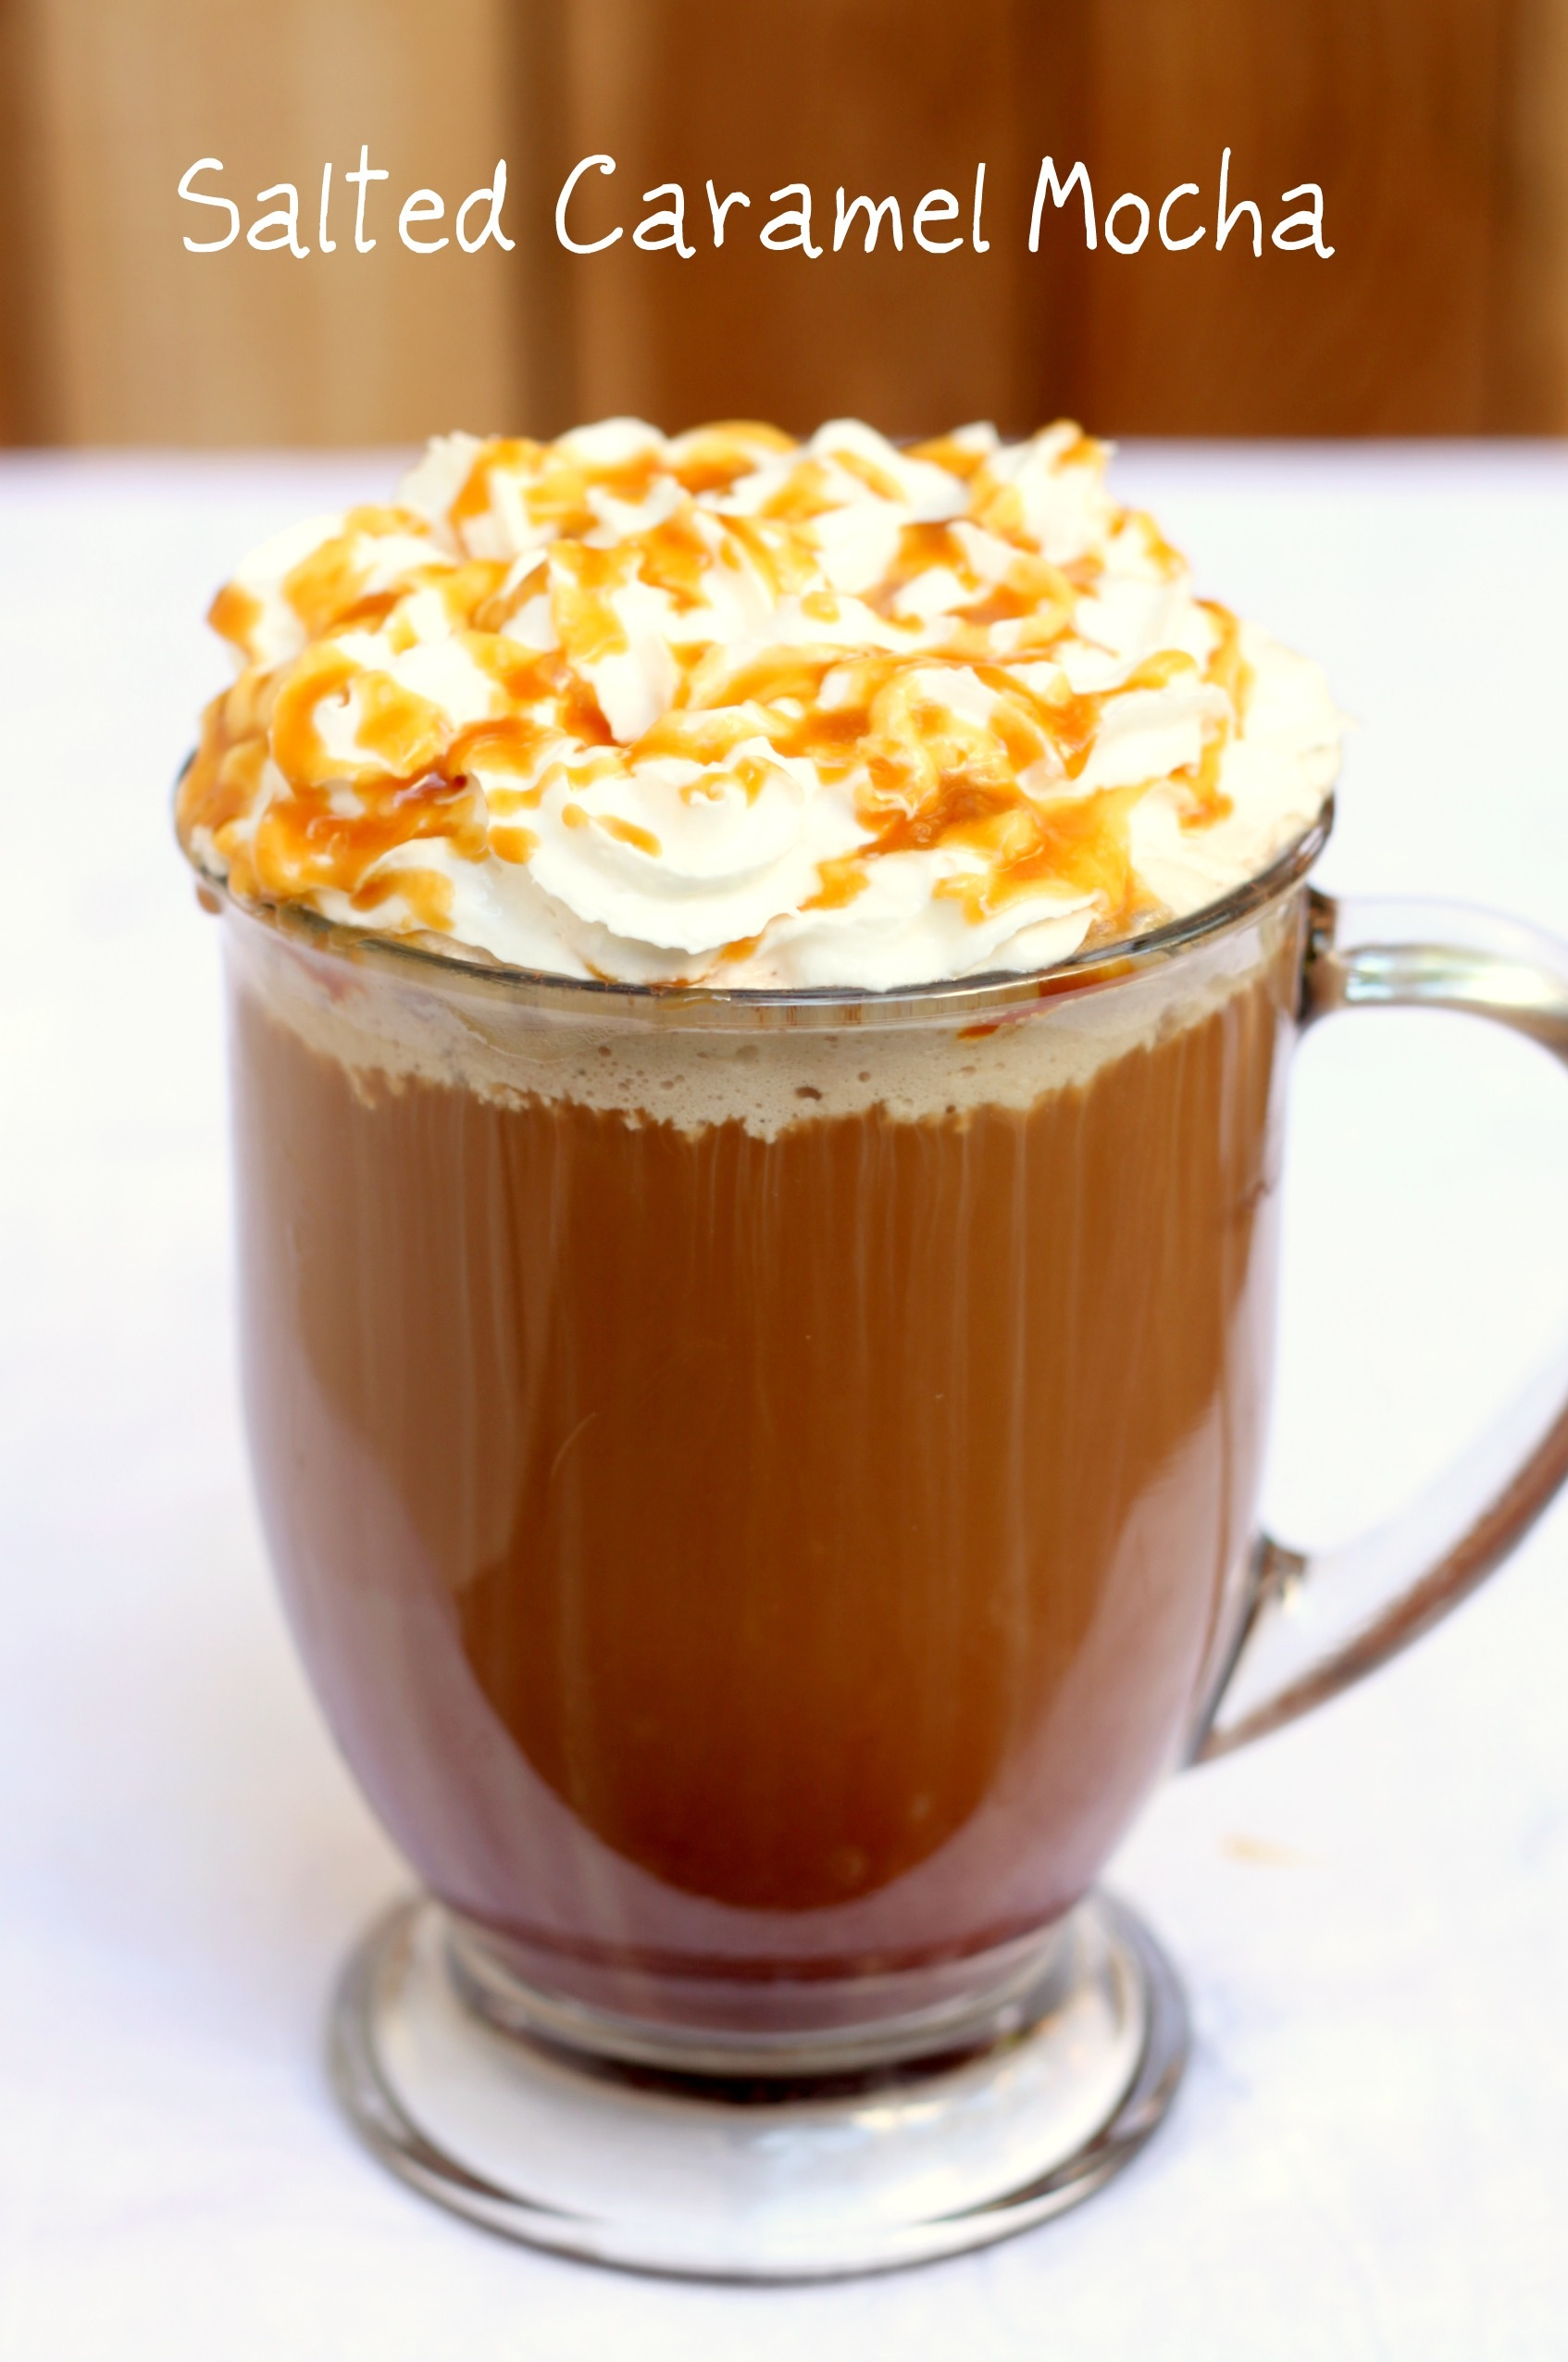 Homemade Salted Caramel Mocha